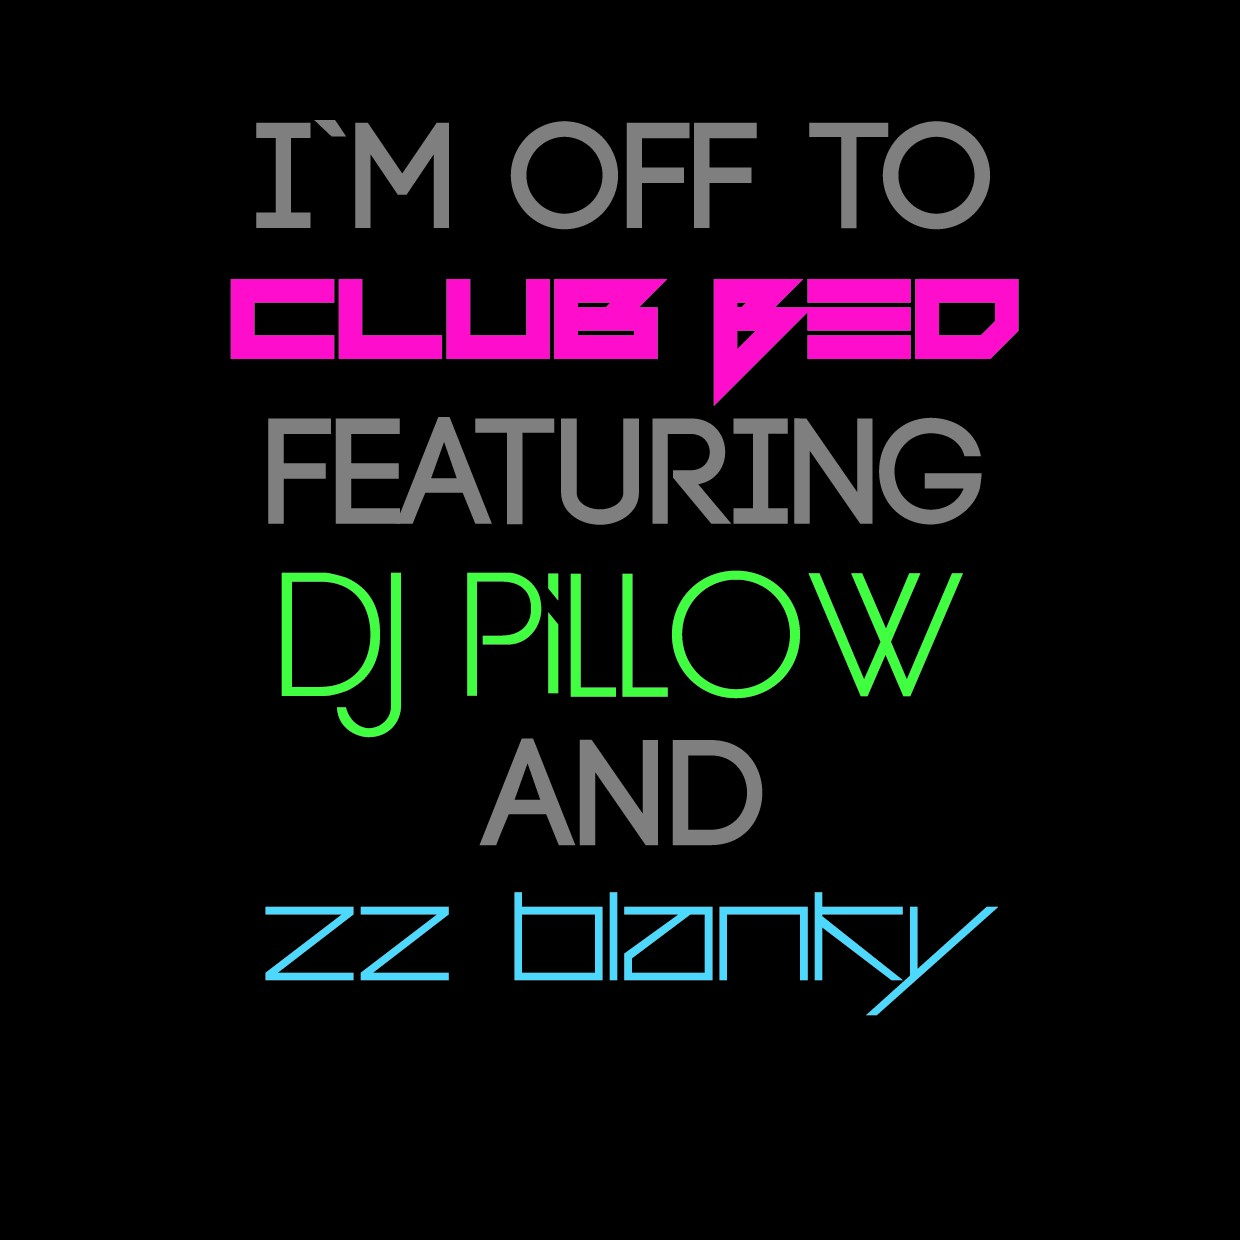 Ipod Pillow Club Bed And Dj Pillow Fundjstuff Com